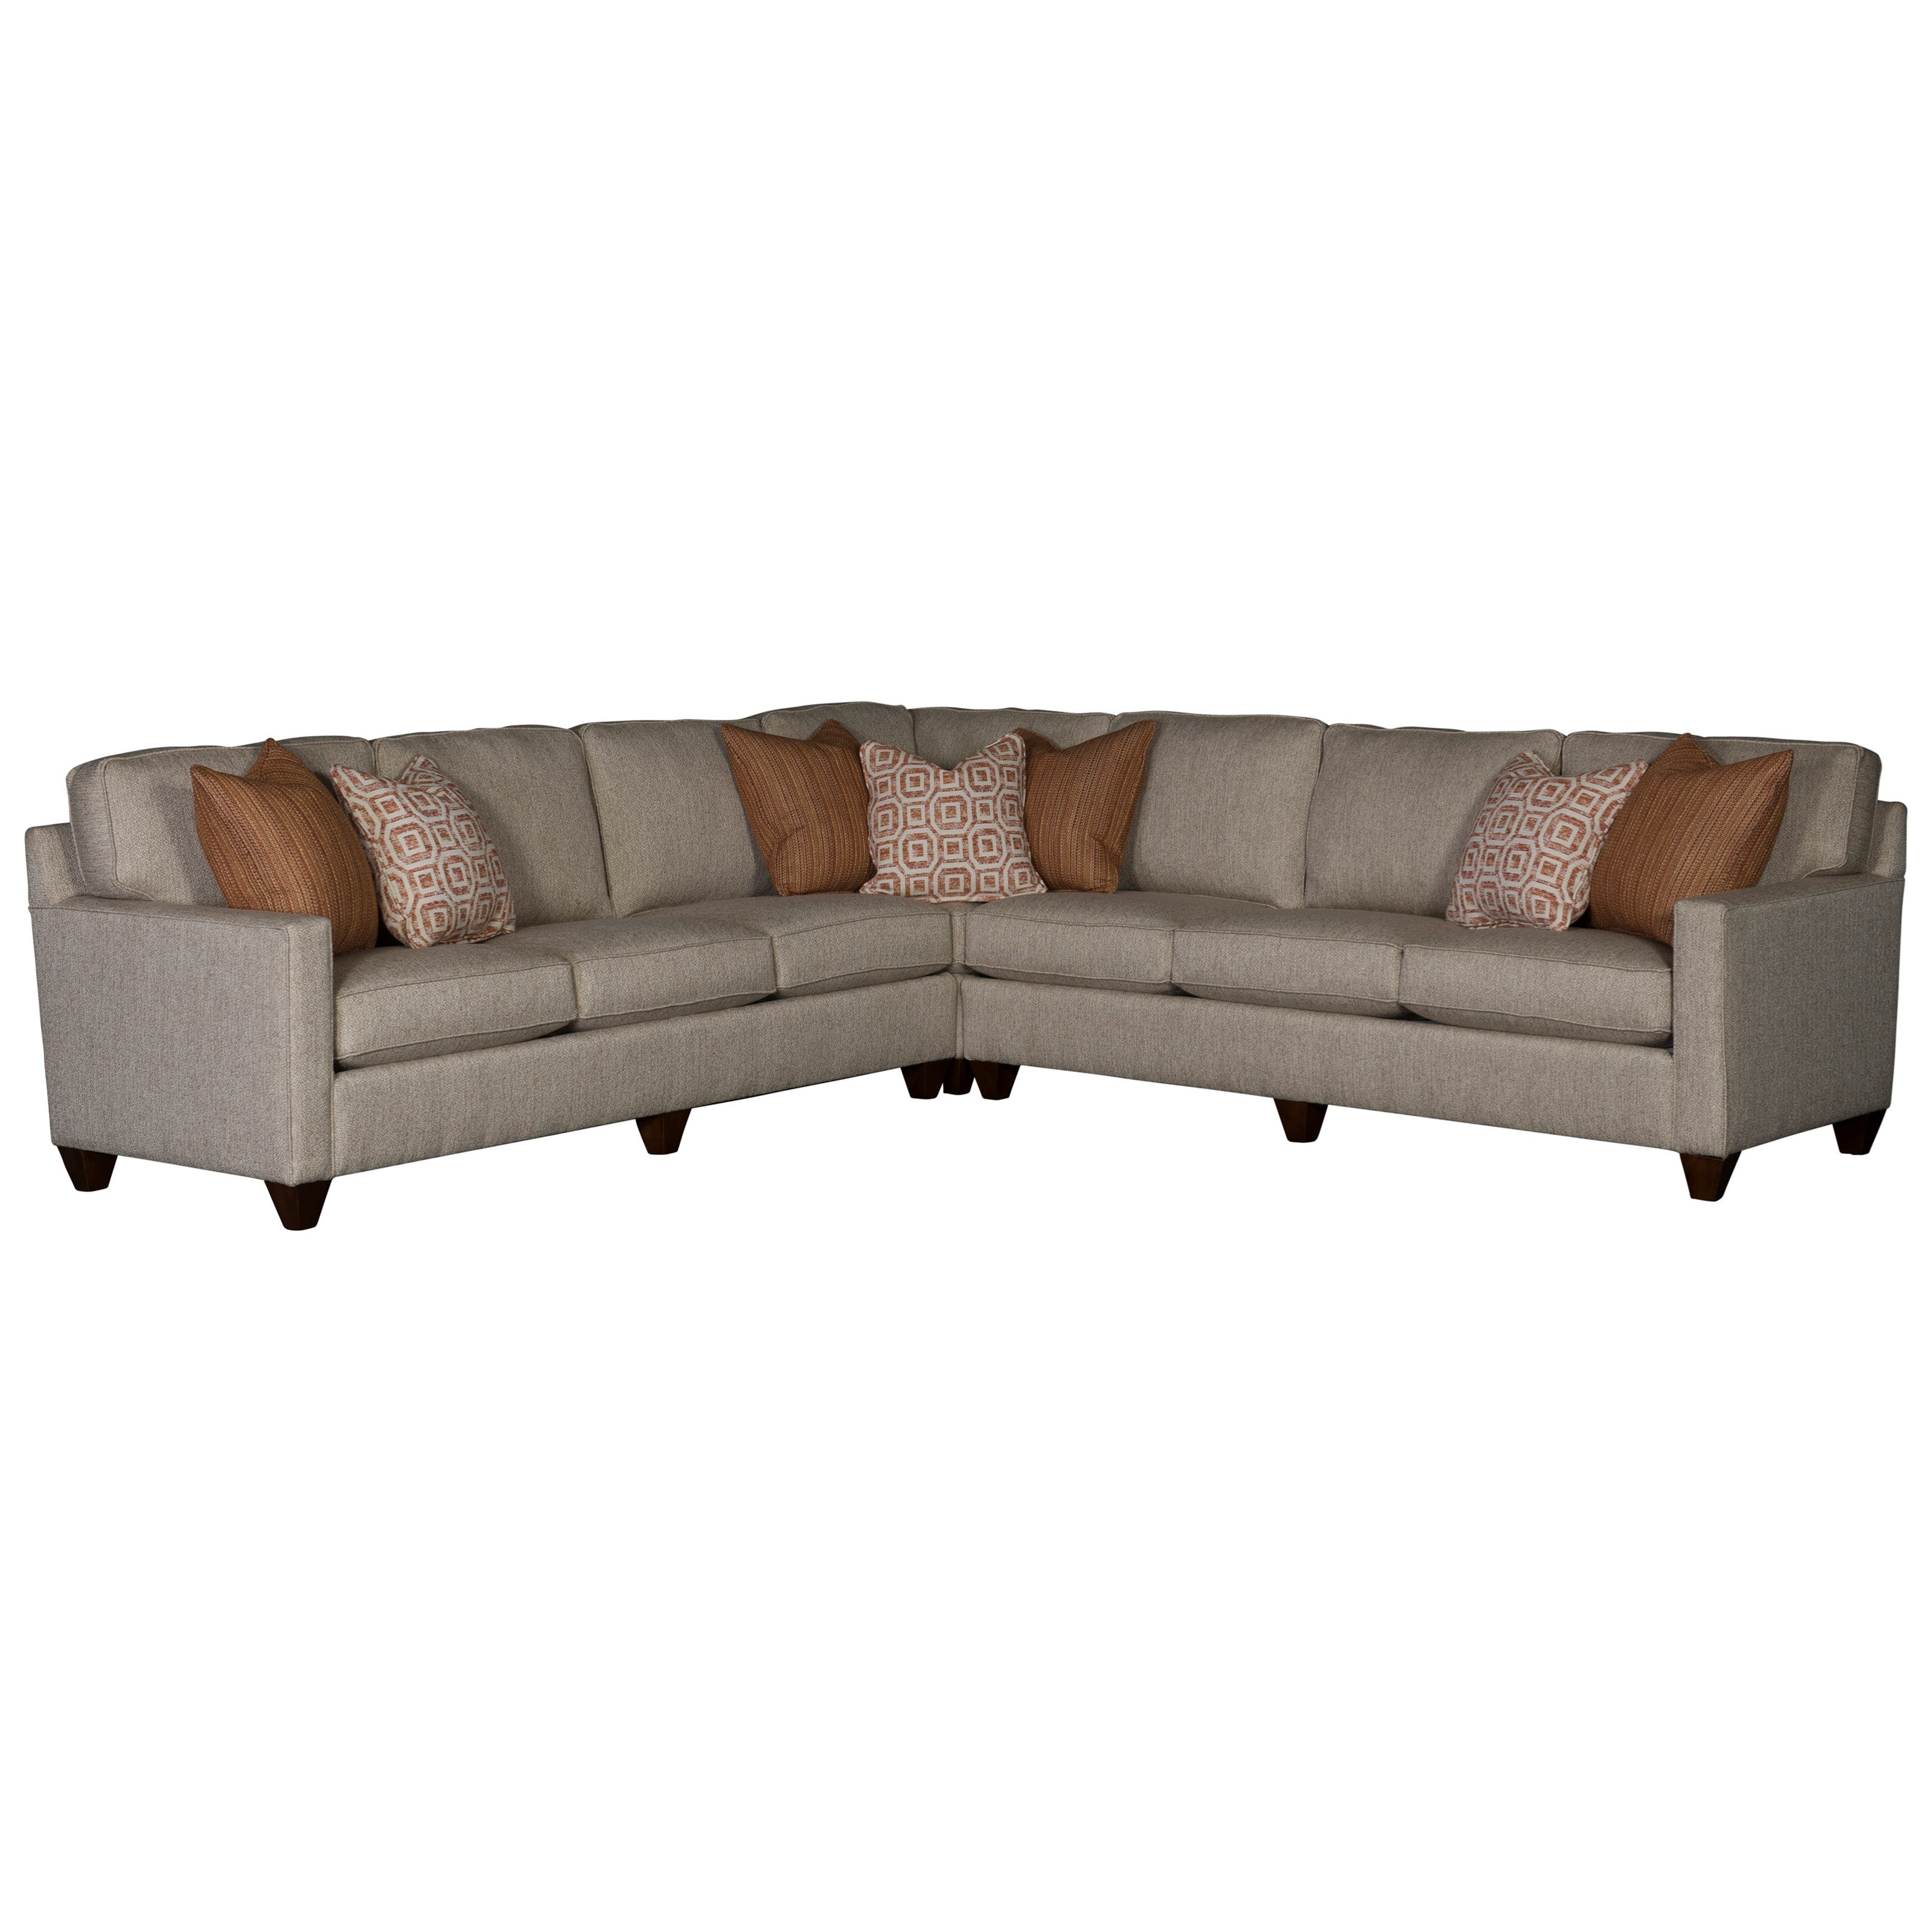 3830 Sectional Sofa with 6 Seats by Mayo at Pedigo Furniture